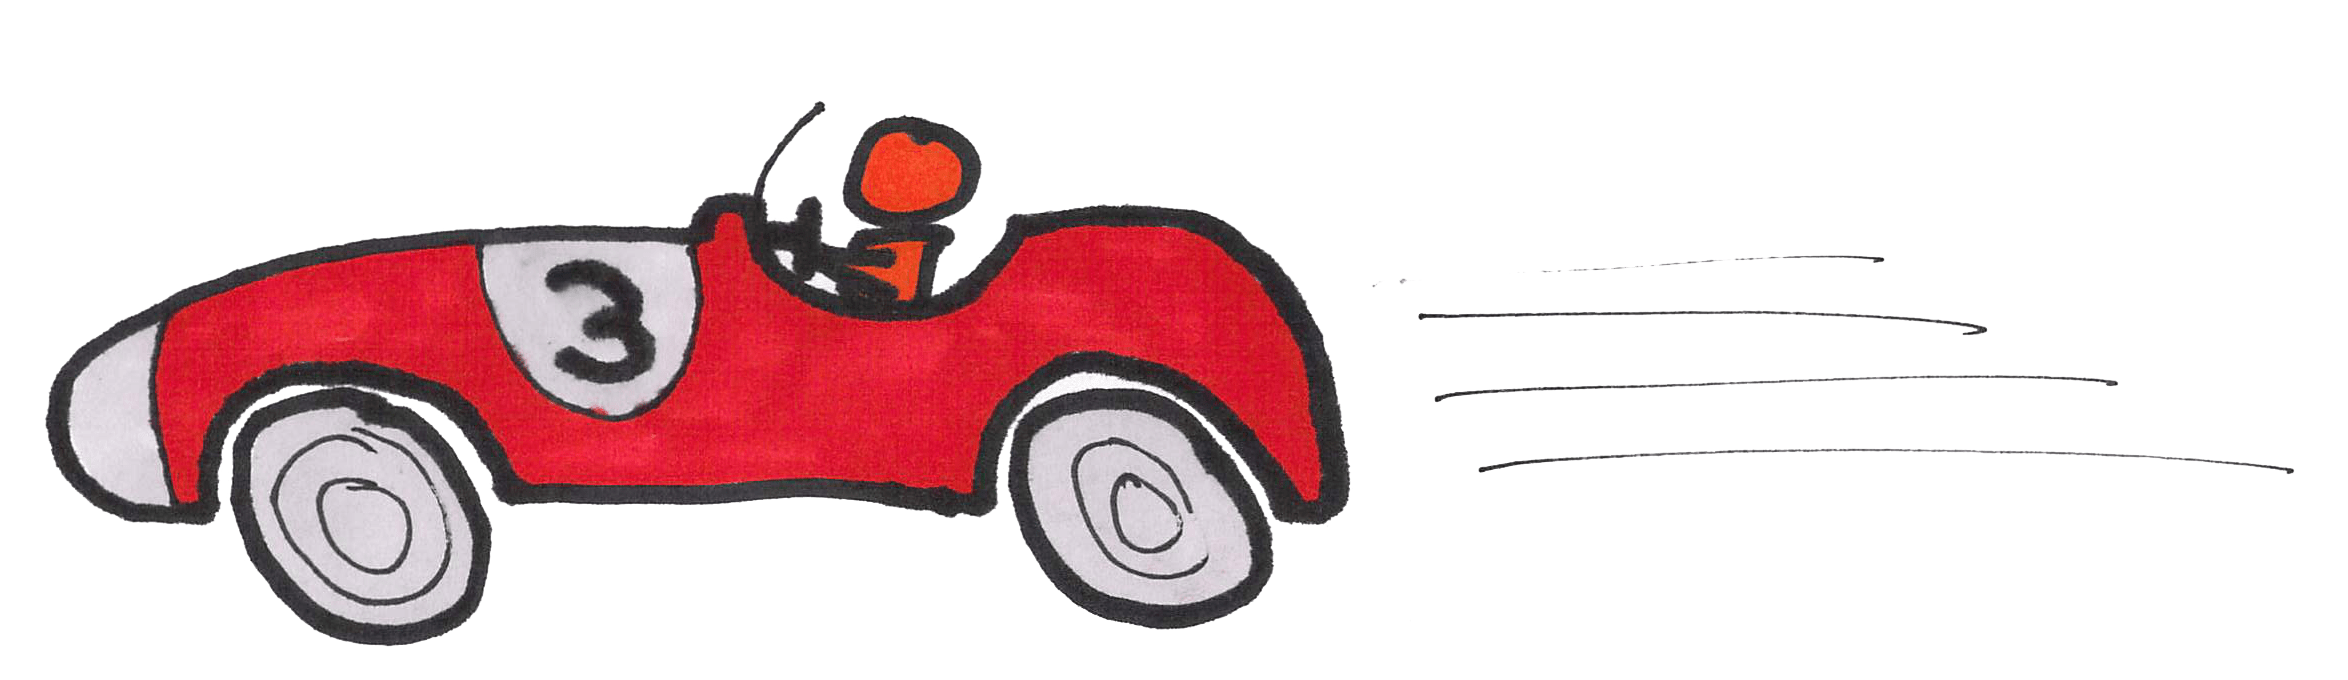 Fast clipart speed velocity. One lean startup experiment